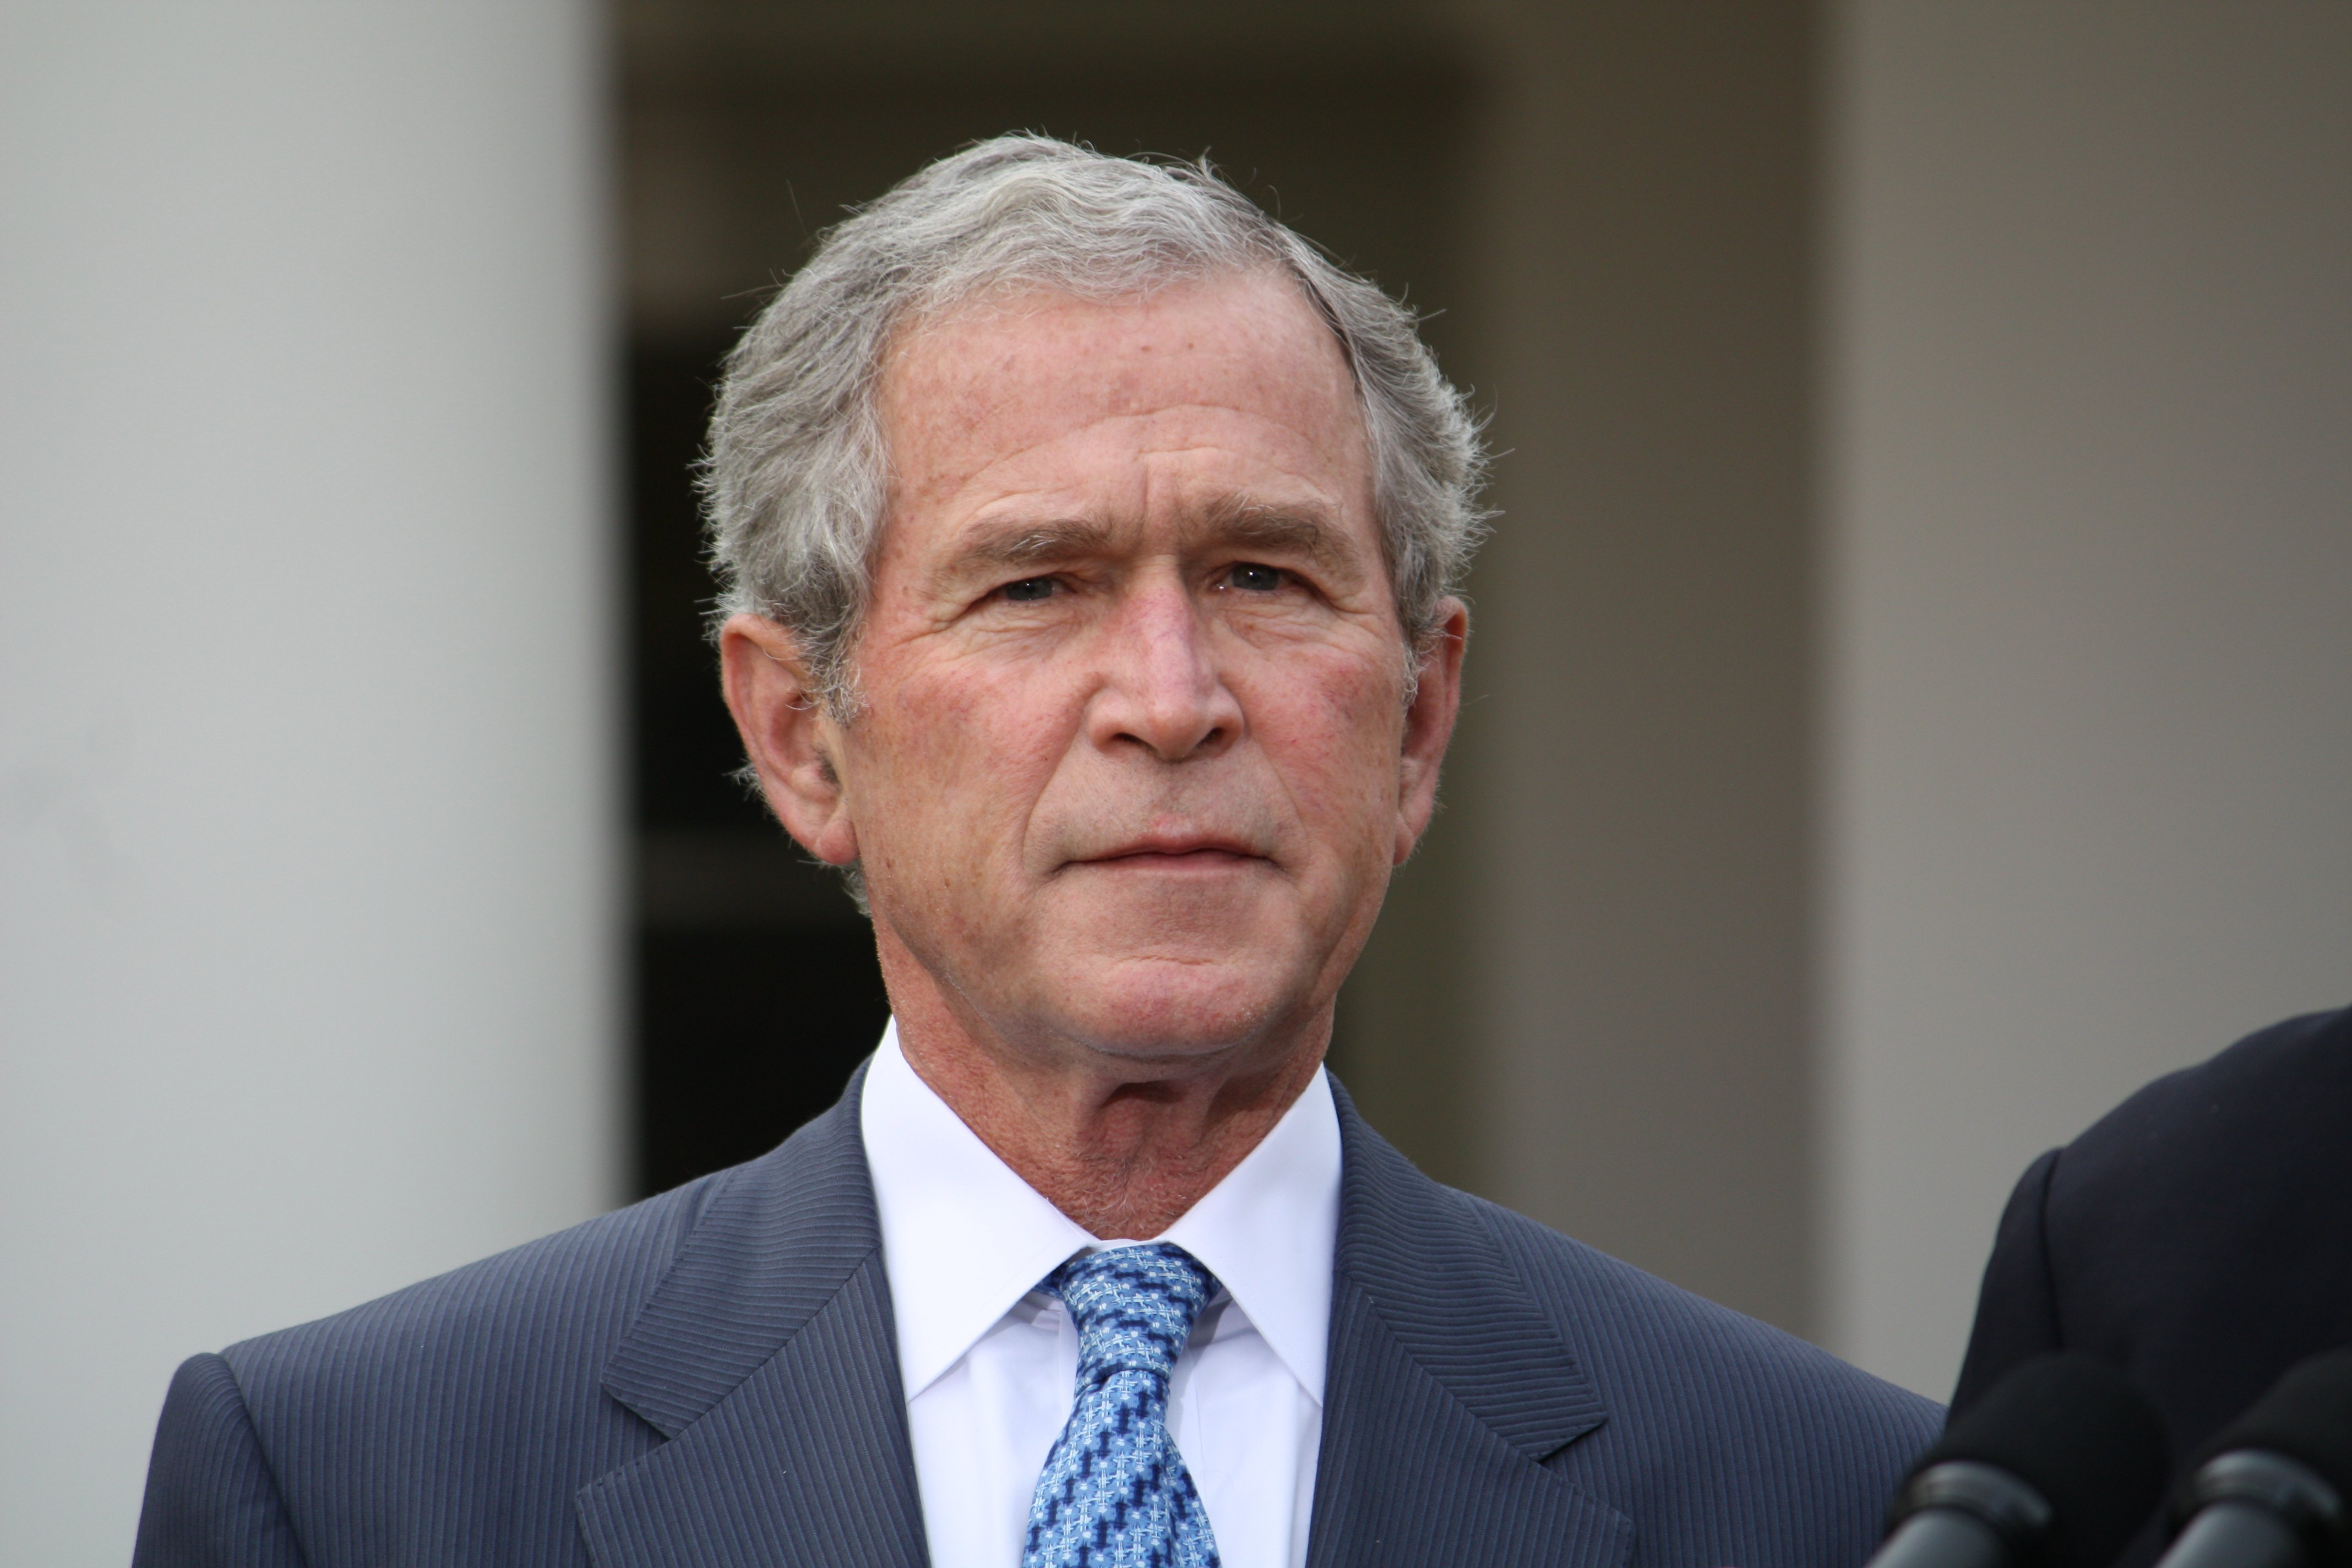 43rd u s president george w bush Born on 6 july 1946 in new haven, connecticut, george walker bush, known as george w bush or george bush junior was the 43 rd president of the united states of america, serving from 2001 – 2008 he was preceded by bill clinton, and he was followed by barack obama.